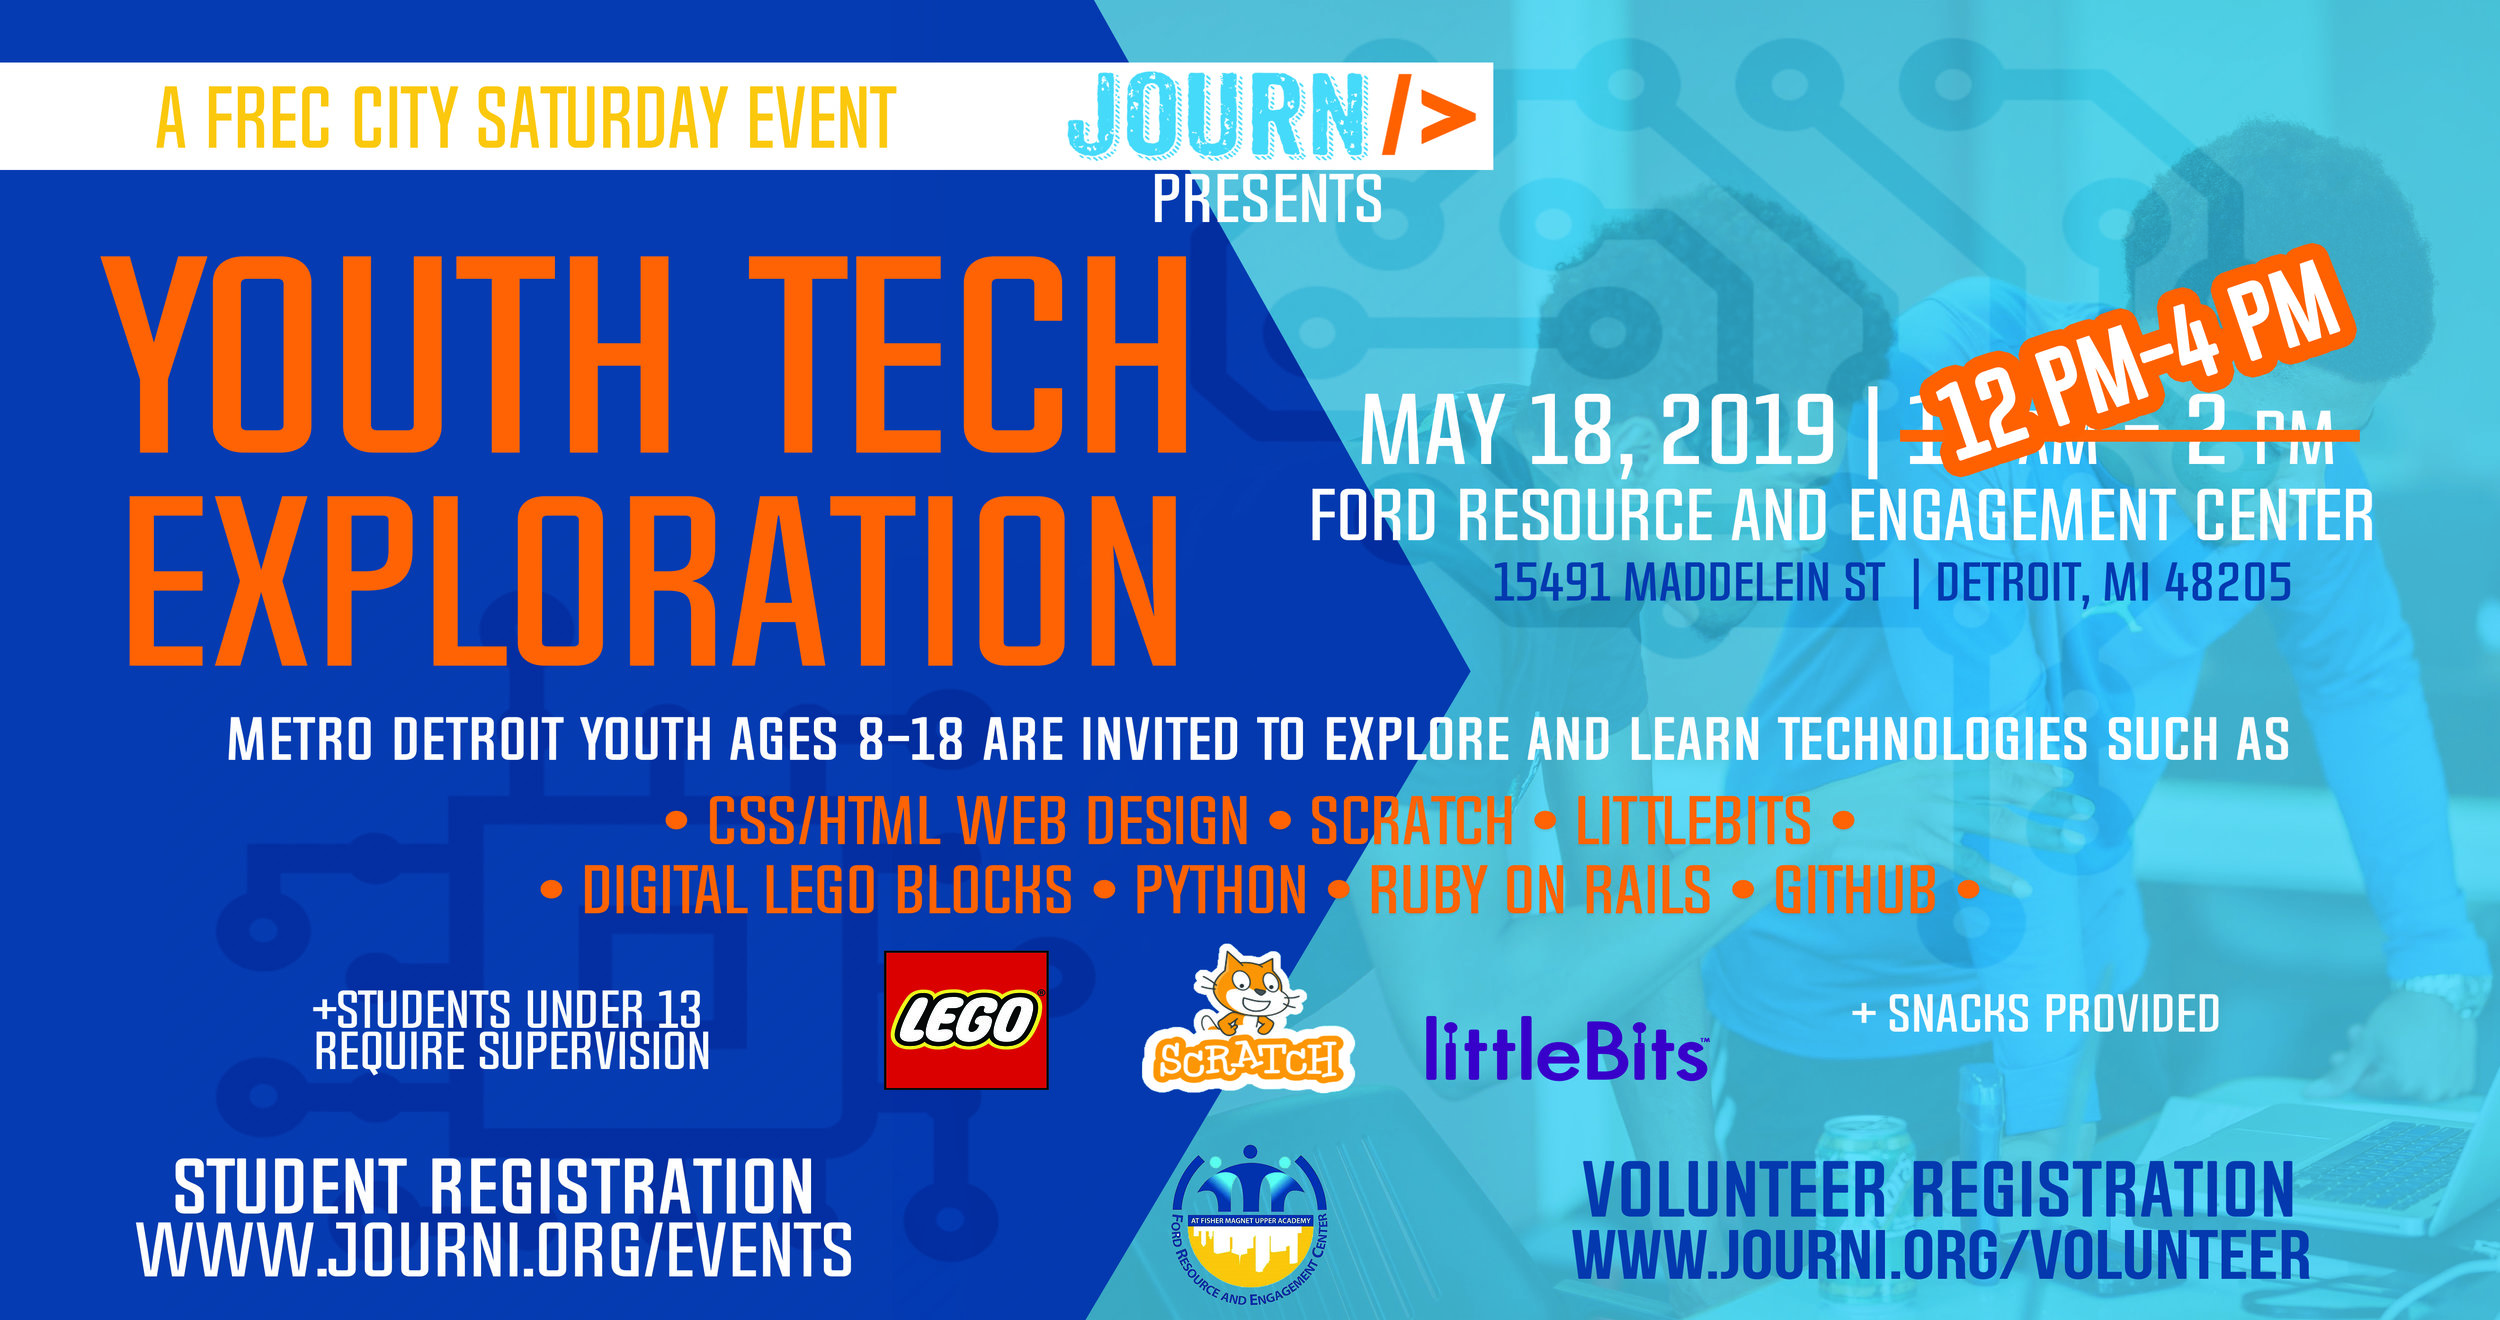 ALL YOUTH 8-18 IN METRO DETROIT ARE INVITED TO JOIN  JOURNI 'S YOUTH TECHNOLOGY EXPLORATION! WE WILL INTRODUCE YOU TO WEB DESIGN, BUILDING BLOCKS WITH  WEDO ,  LITTLE BITS , AND  SCRATCH . FOR MORE ADVANCED ATTENDEES, WE'LL HAVE OTHER AWESOME THINGS TO DO (PYTHON, RUBY ON RAILS, OR GITHUB).  YOU'LL HAVE AN OPPORTUNITY TO EXPLORE TECHNOLOGY IN A FUN COLLABORATIVE ENVIRONMENT. REGISTER TODAY!